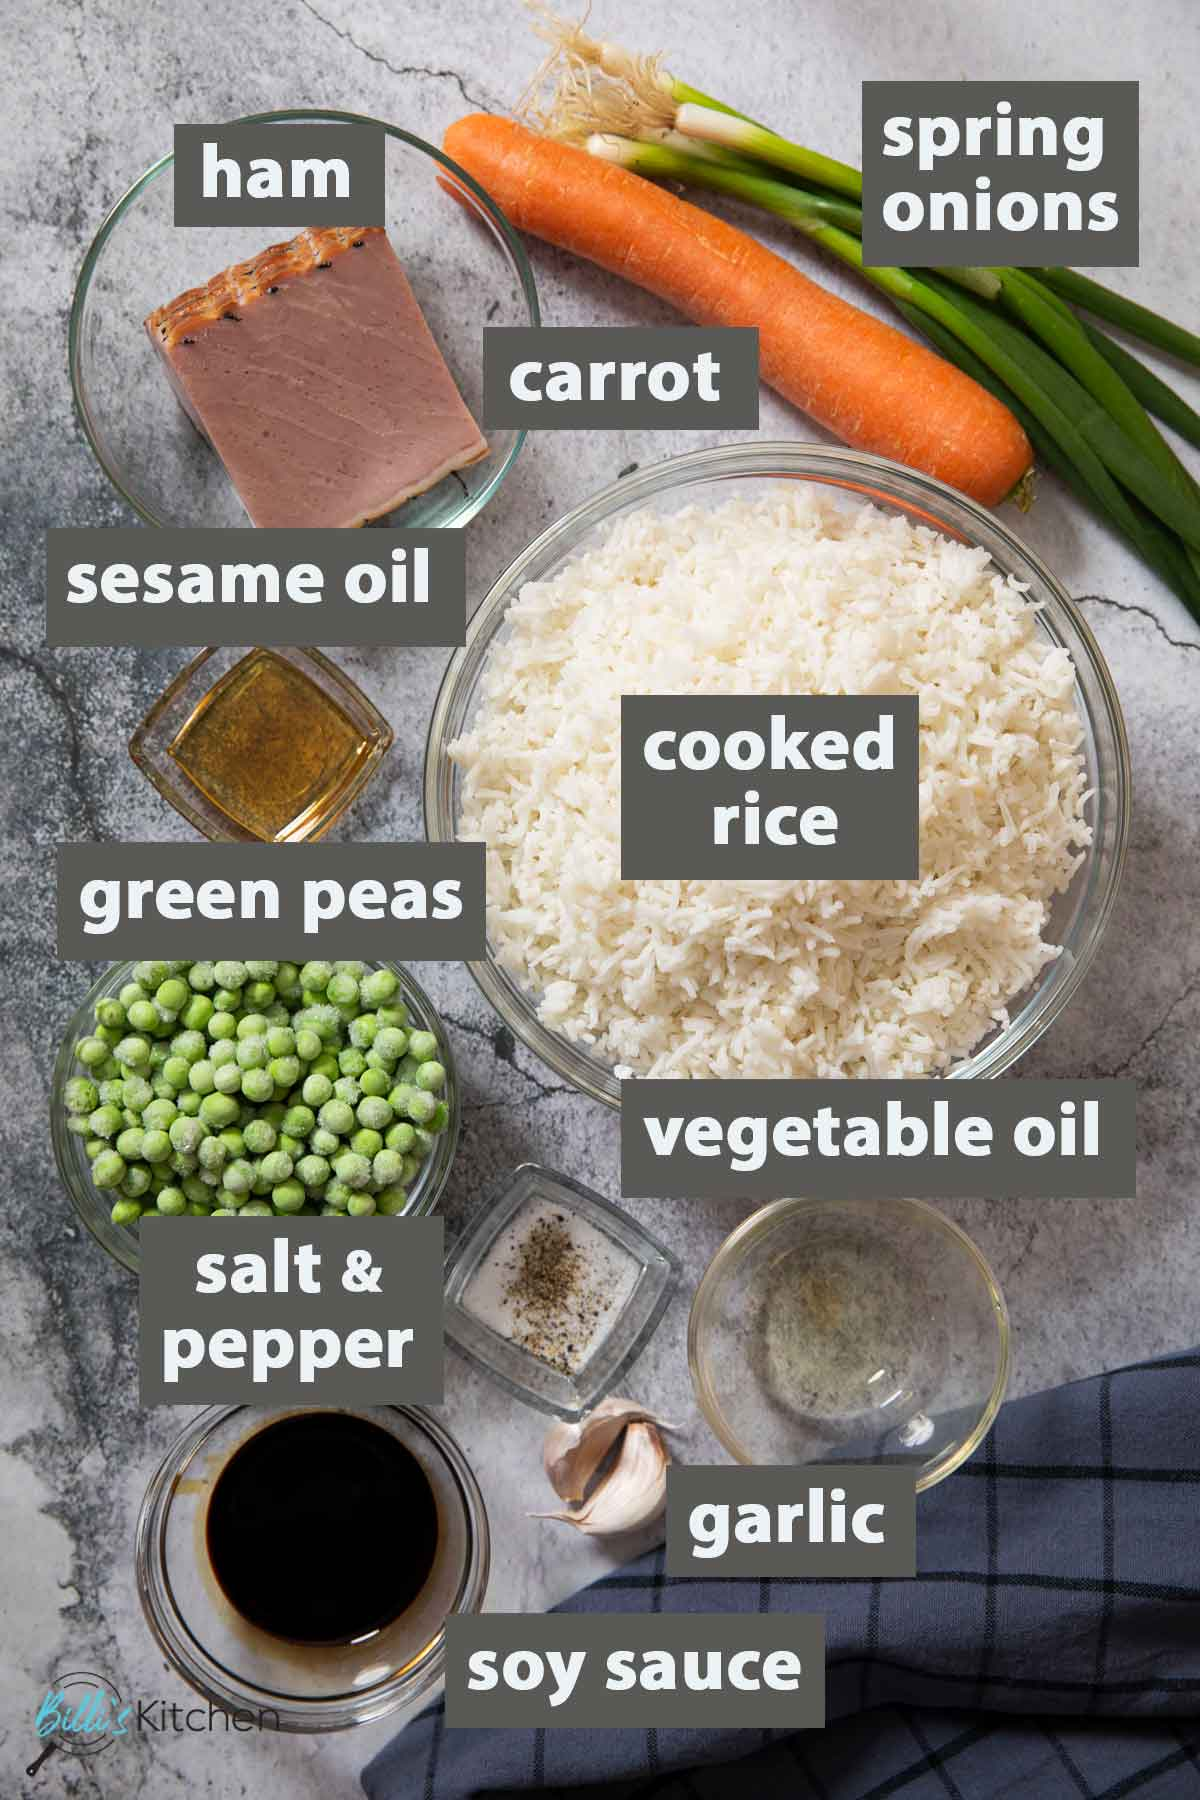 An image showing all the ingredients you need to prepare this easy ham fried rice recipe at home.